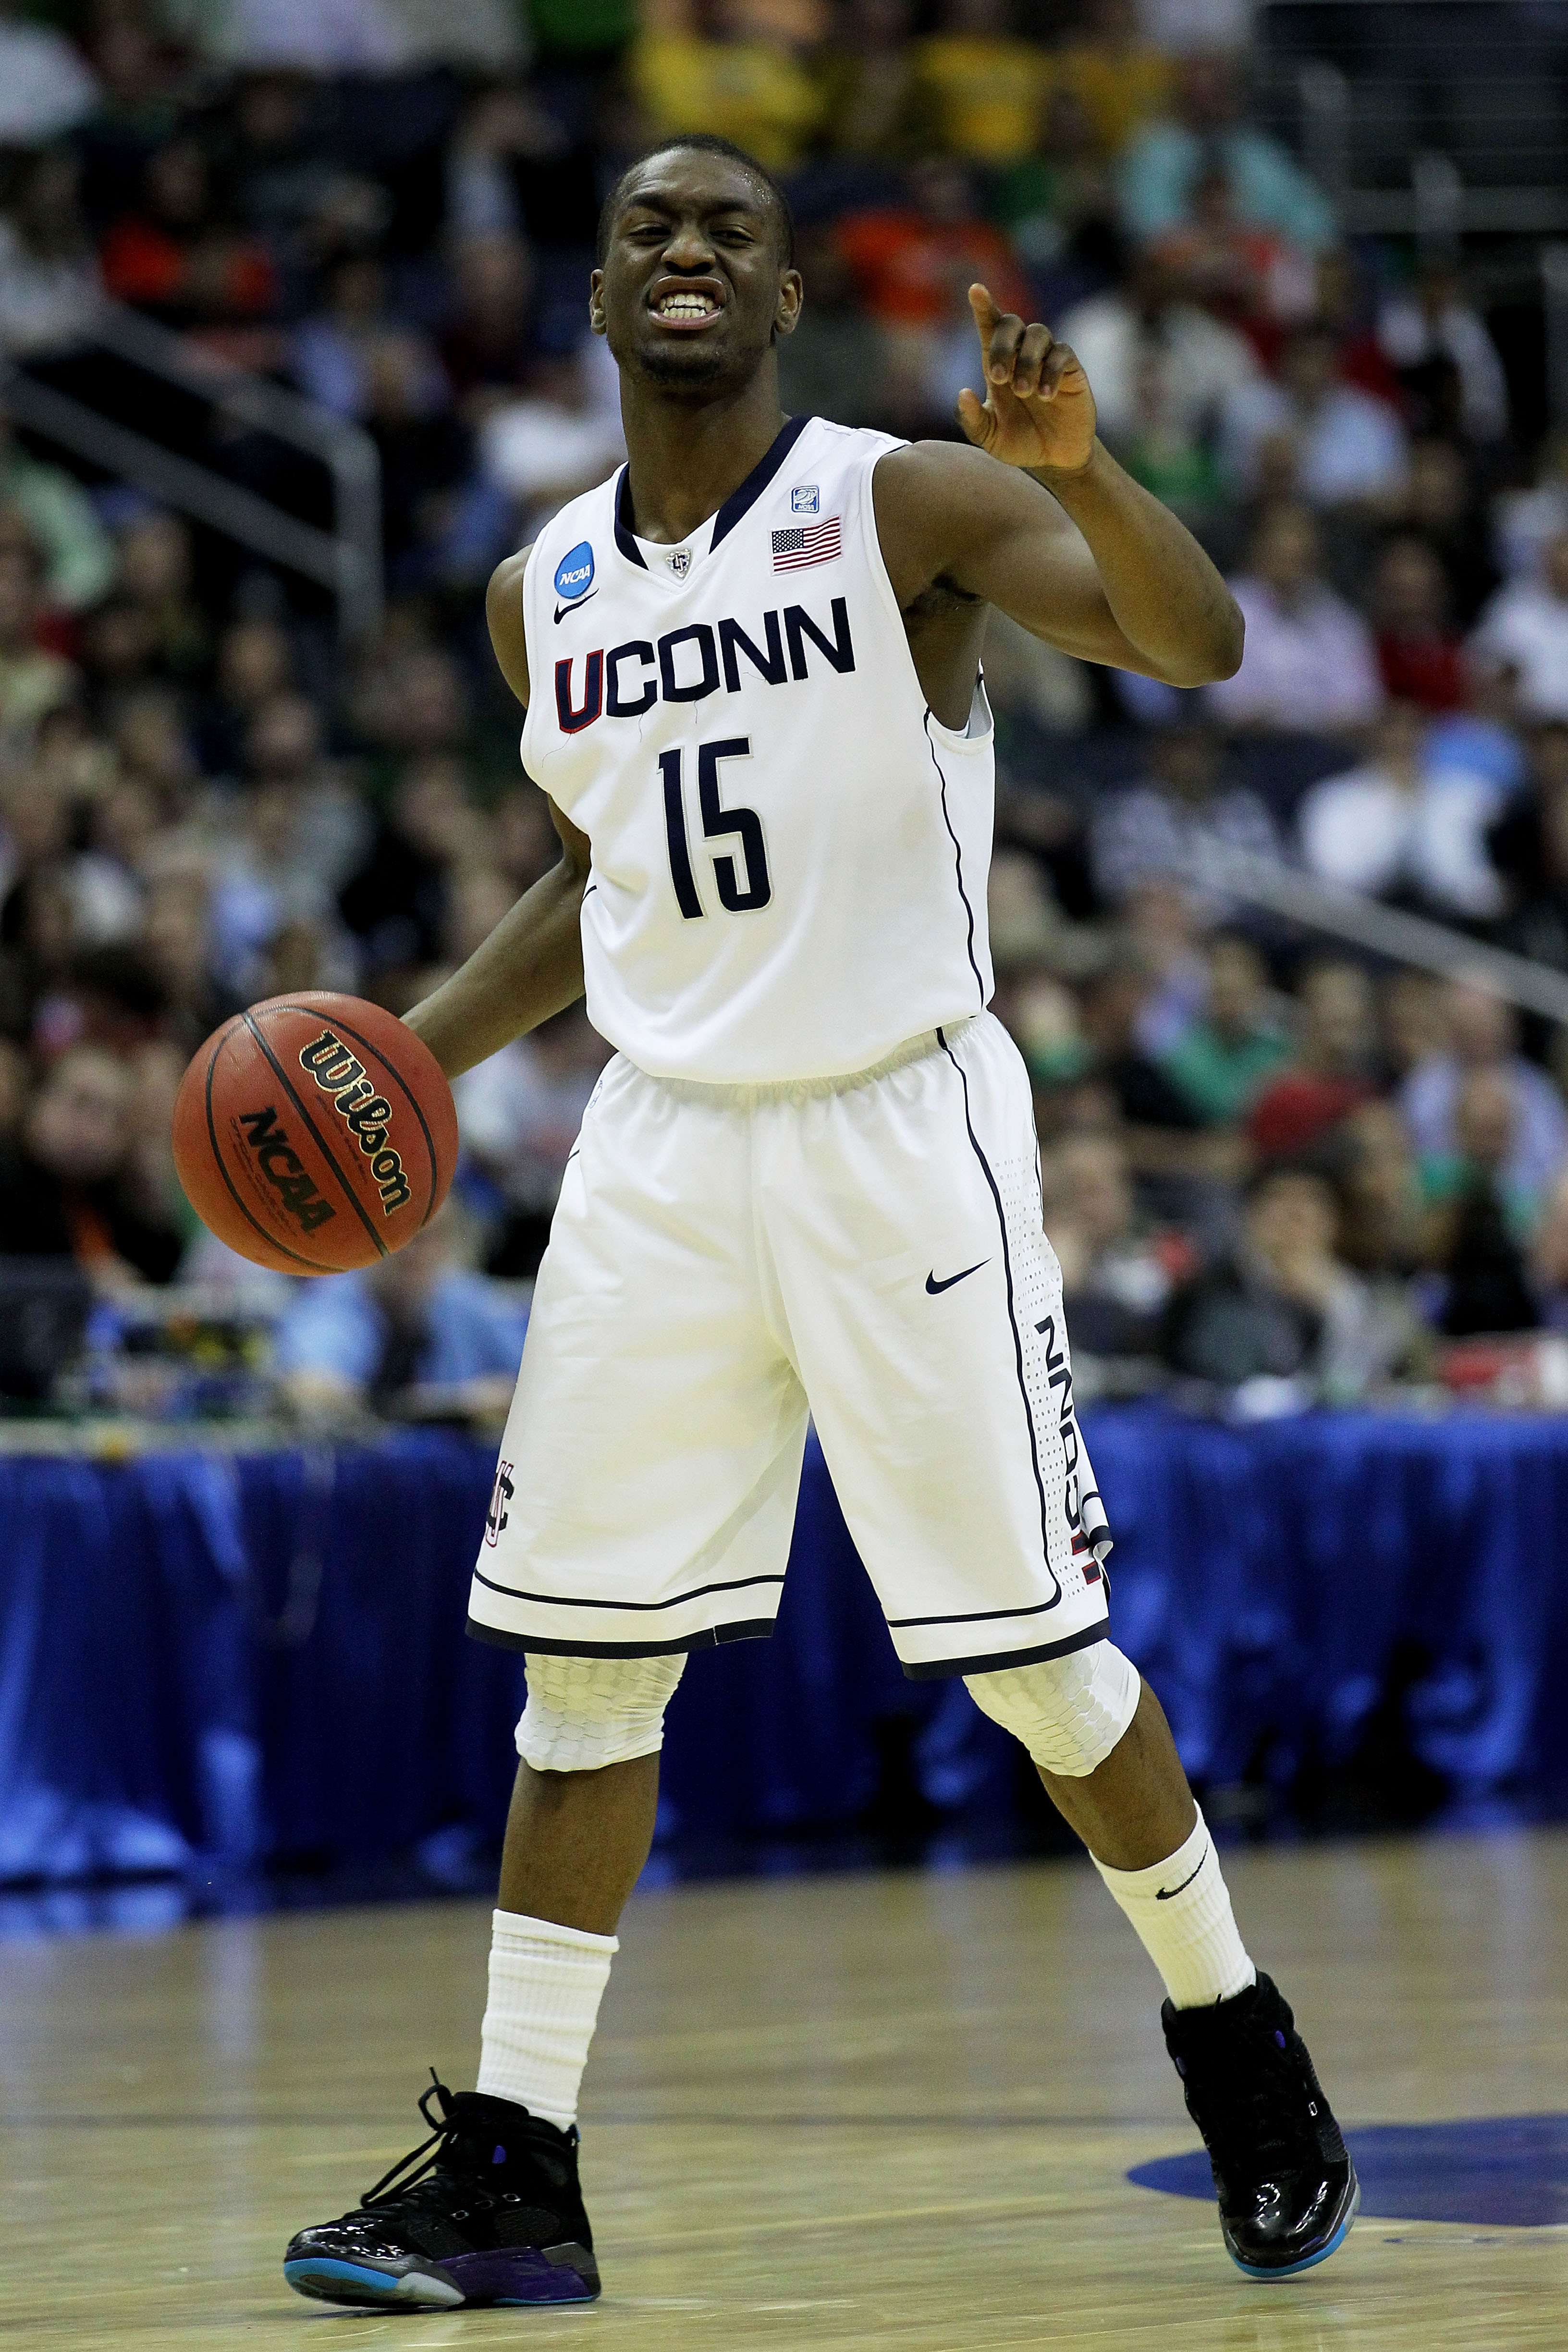 WASHINGTON - MARCH 17:  Kemba Walker #15 of the Connecticut Huskies calls a play against the Bucknell Bison during the second round of the 2011 NCAA men's basketball tournament at the Verizon Center on March 17, 2011 in Washington, DC.  (Photo by Nick Lah